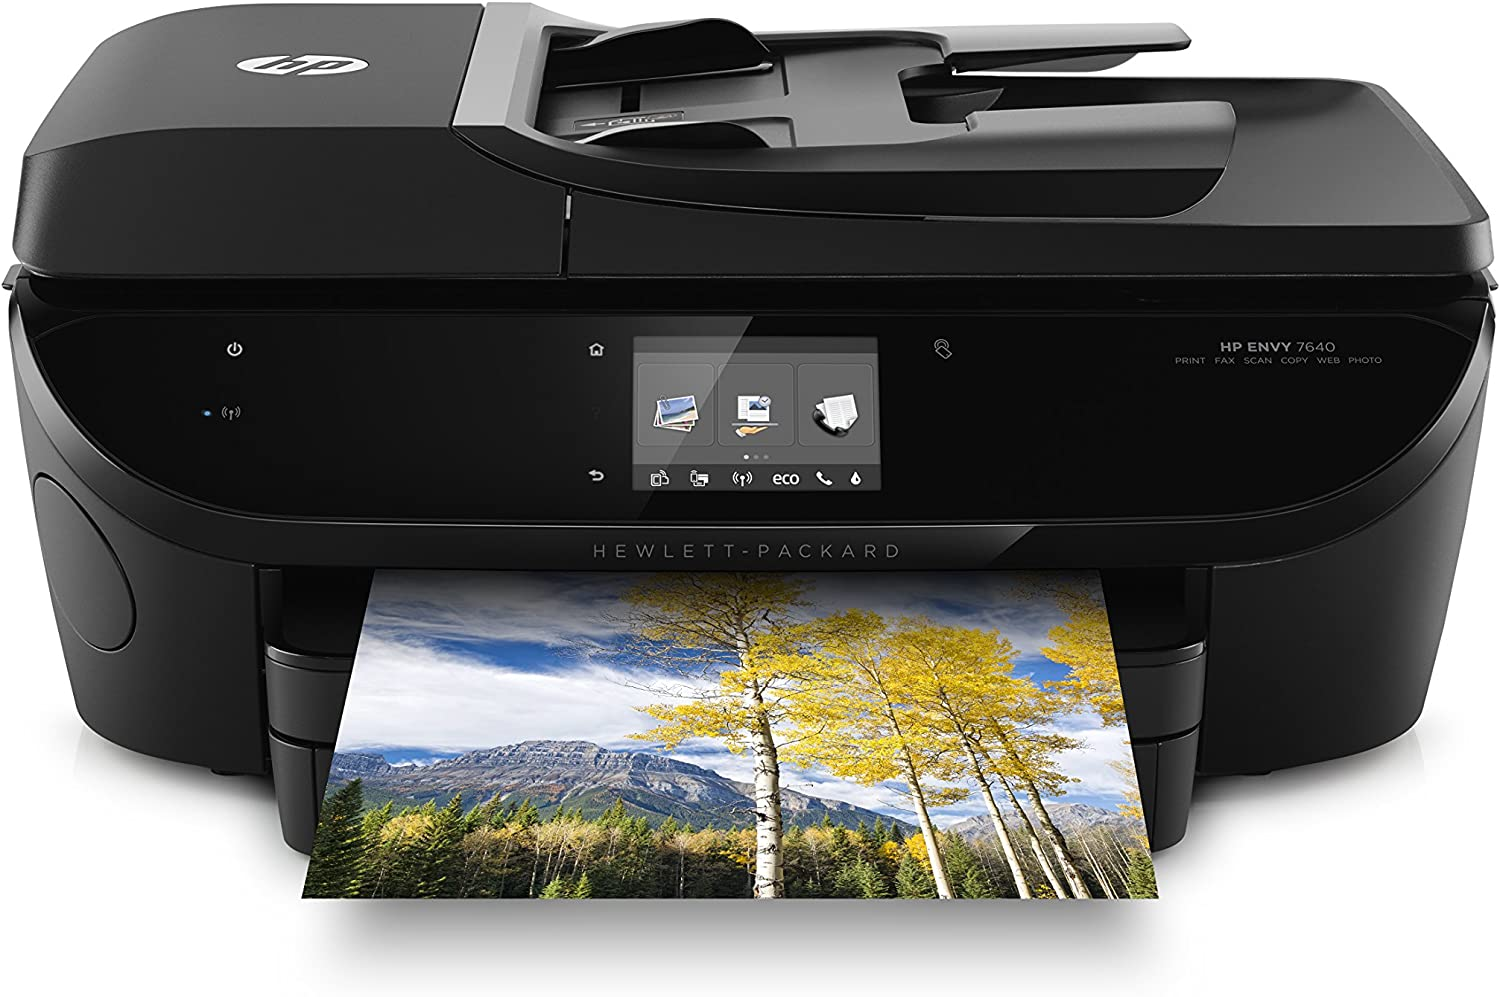 HP Envy 7640 Wireless All-in-One Photo Printer with Mobile Printing, Instant Ink ready, (E4W43AR) (Renewed)